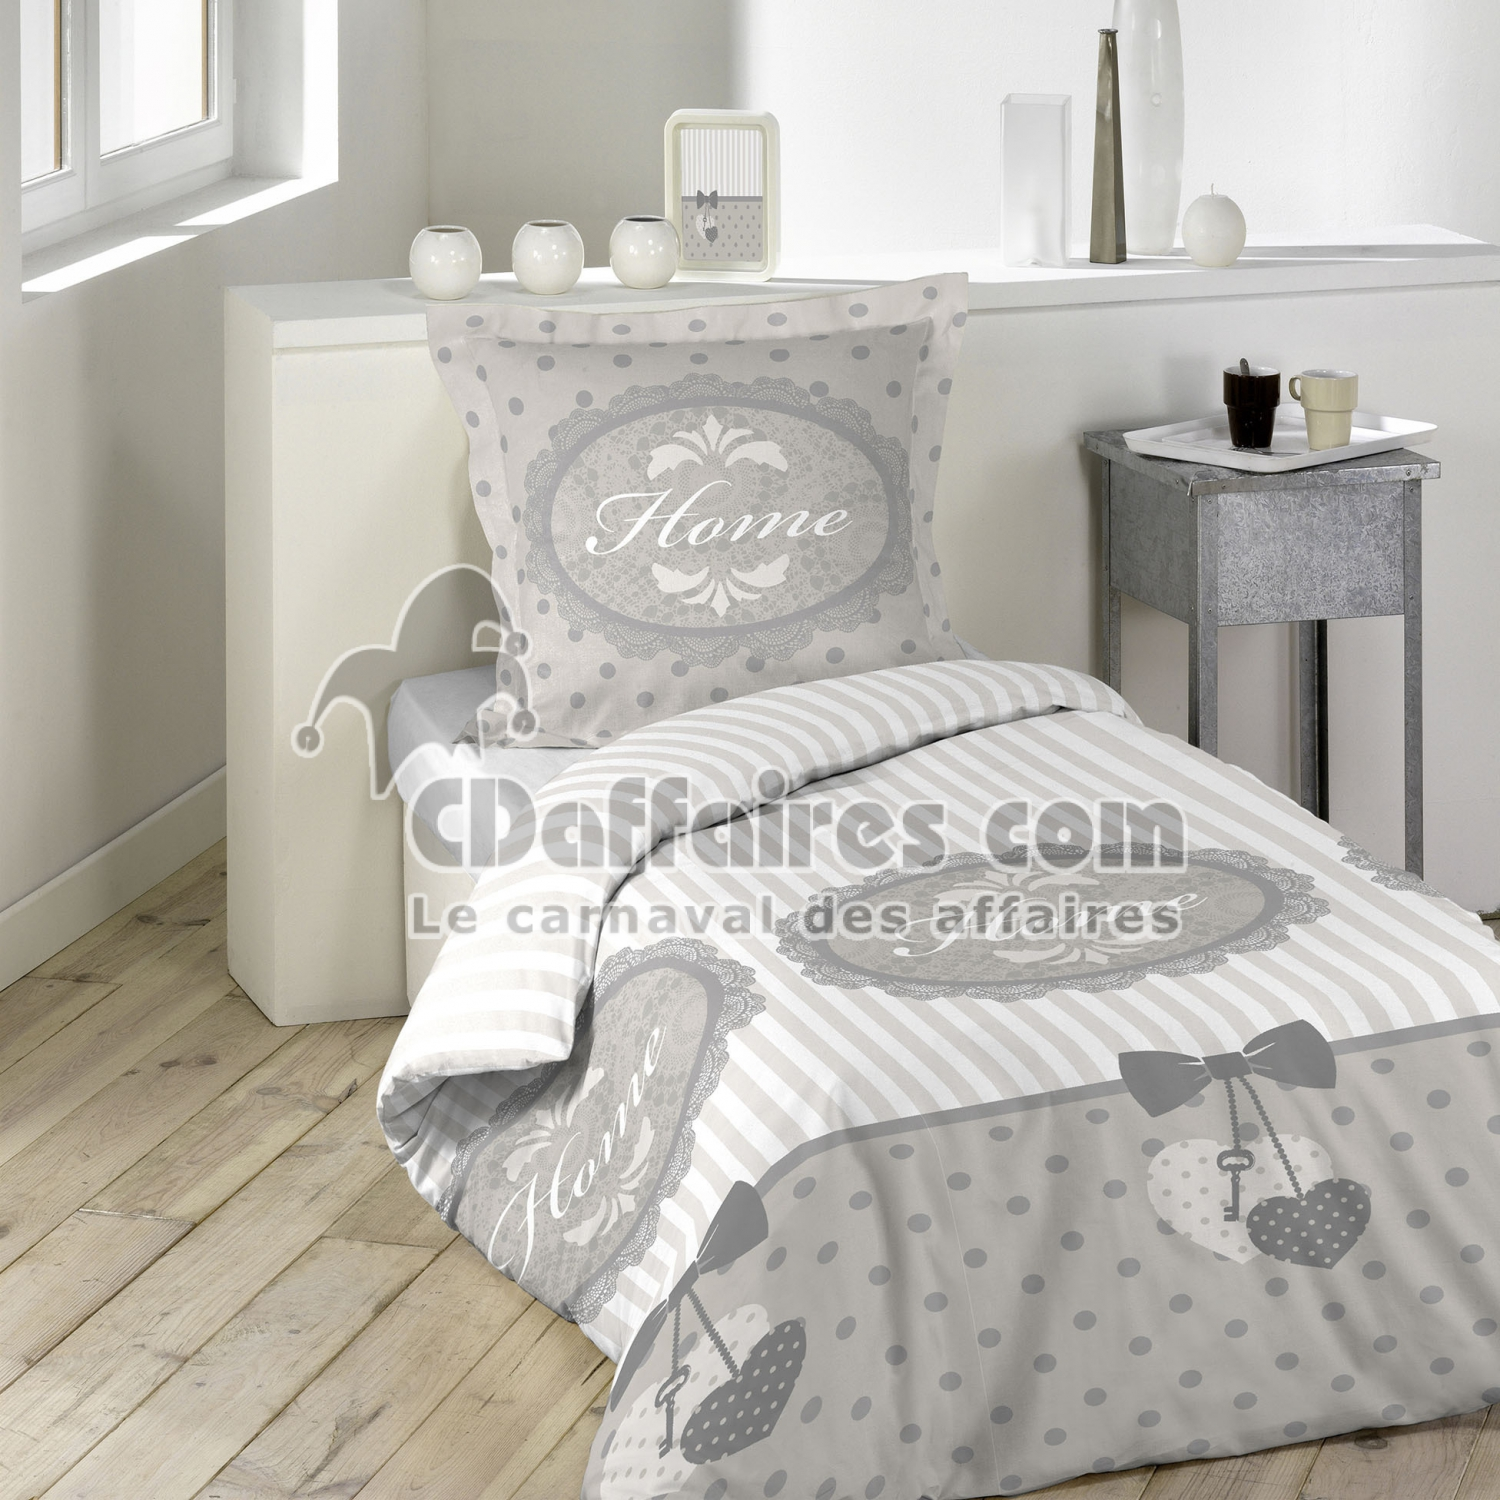 parure 2 p 160 x 220 cm imprime 42 fils allover romantic home cdaffaires. Black Bedroom Furniture Sets. Home Design Ideas